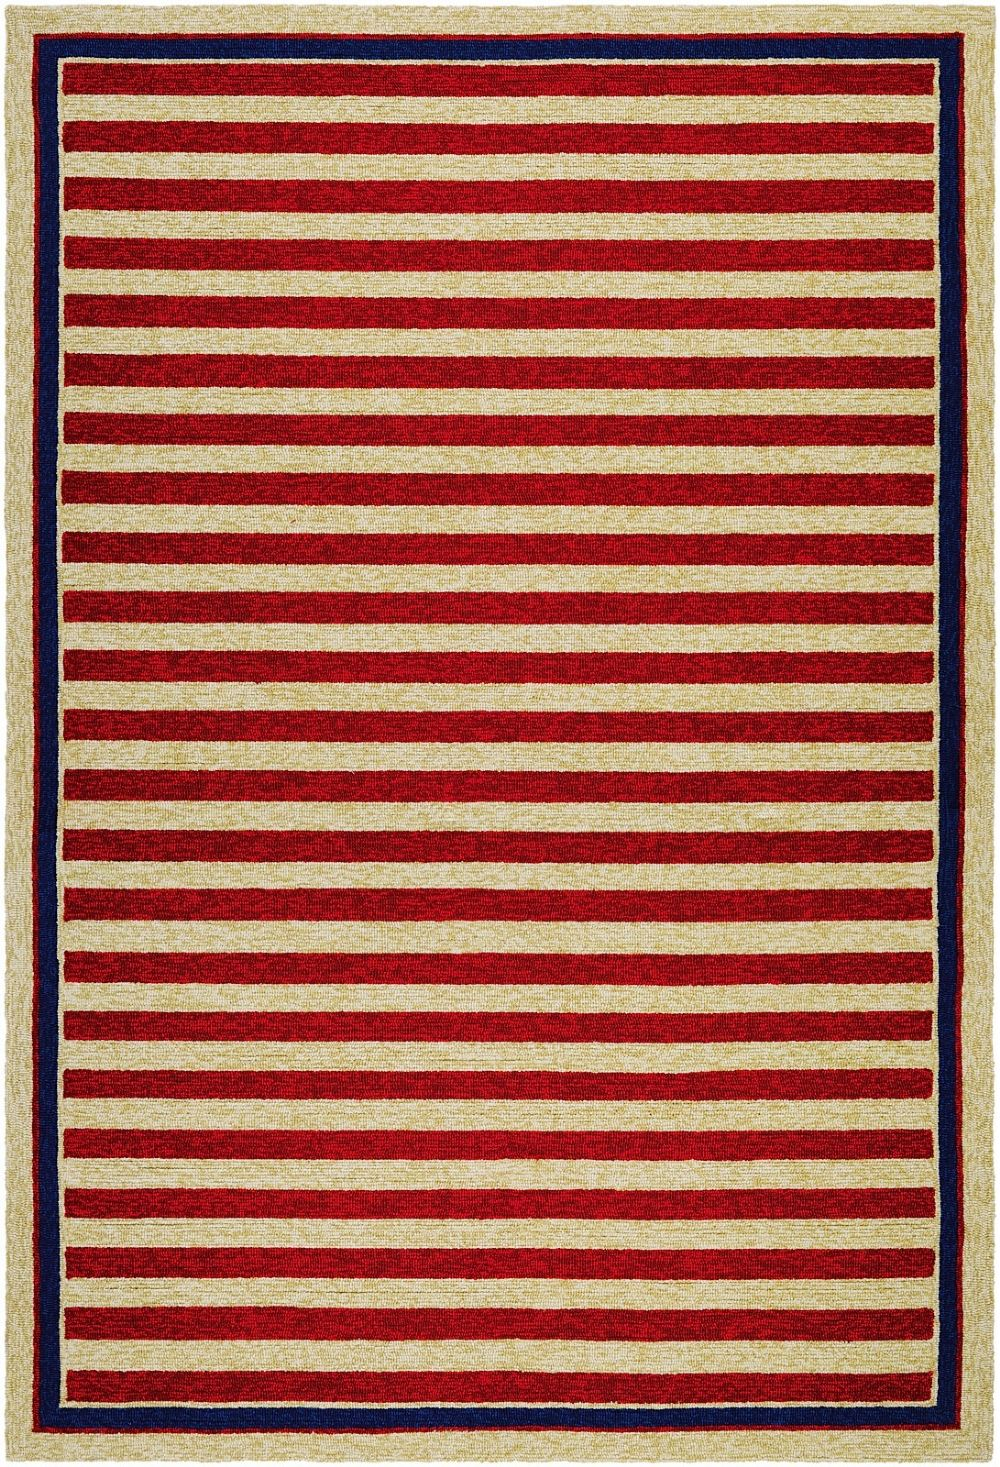 couristan covington solid/striped area rug collection